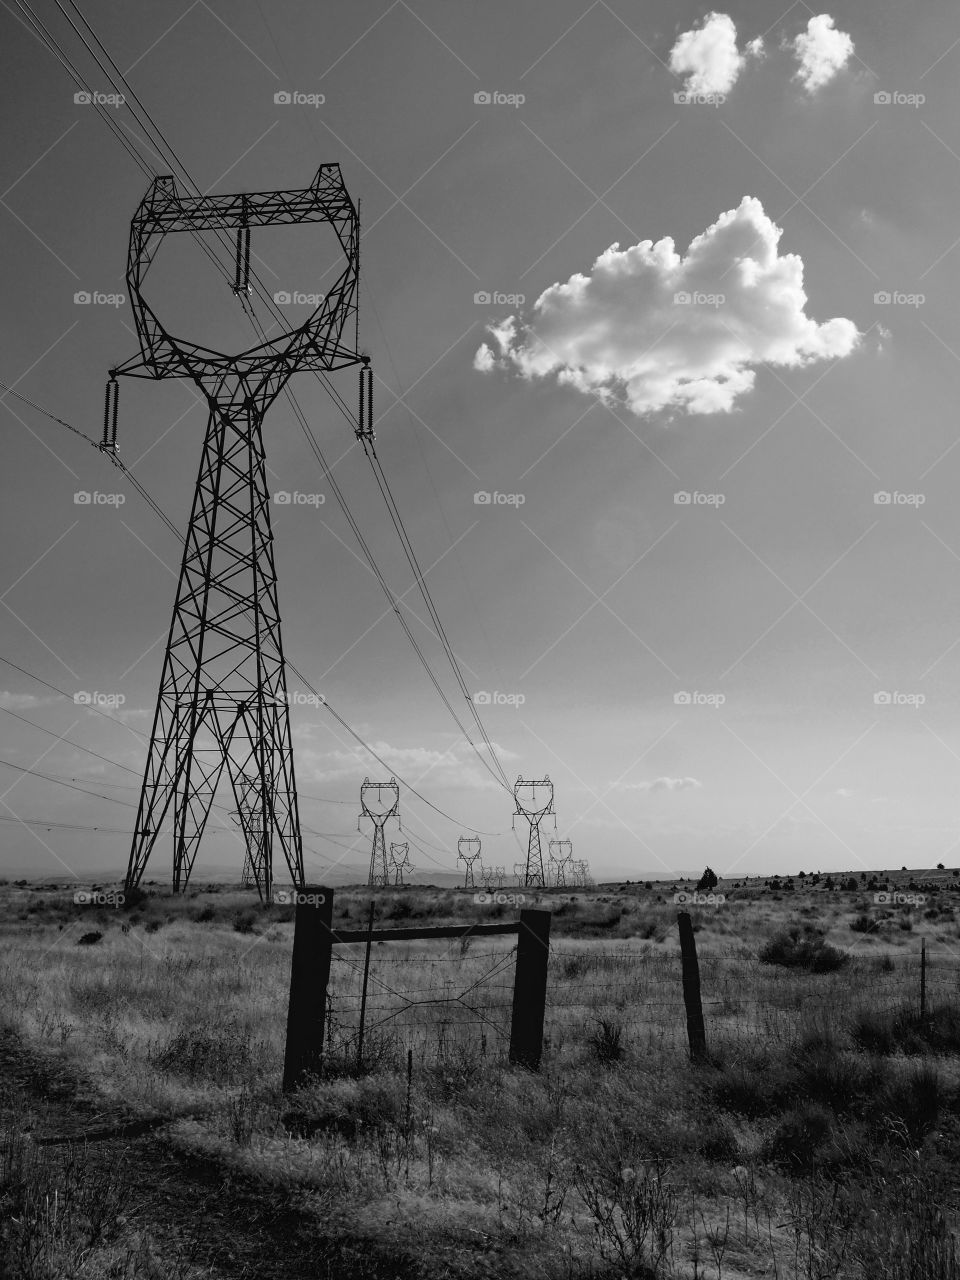 A line of towers carrying electricity to rural Oregon near Shaniko on a fall day.